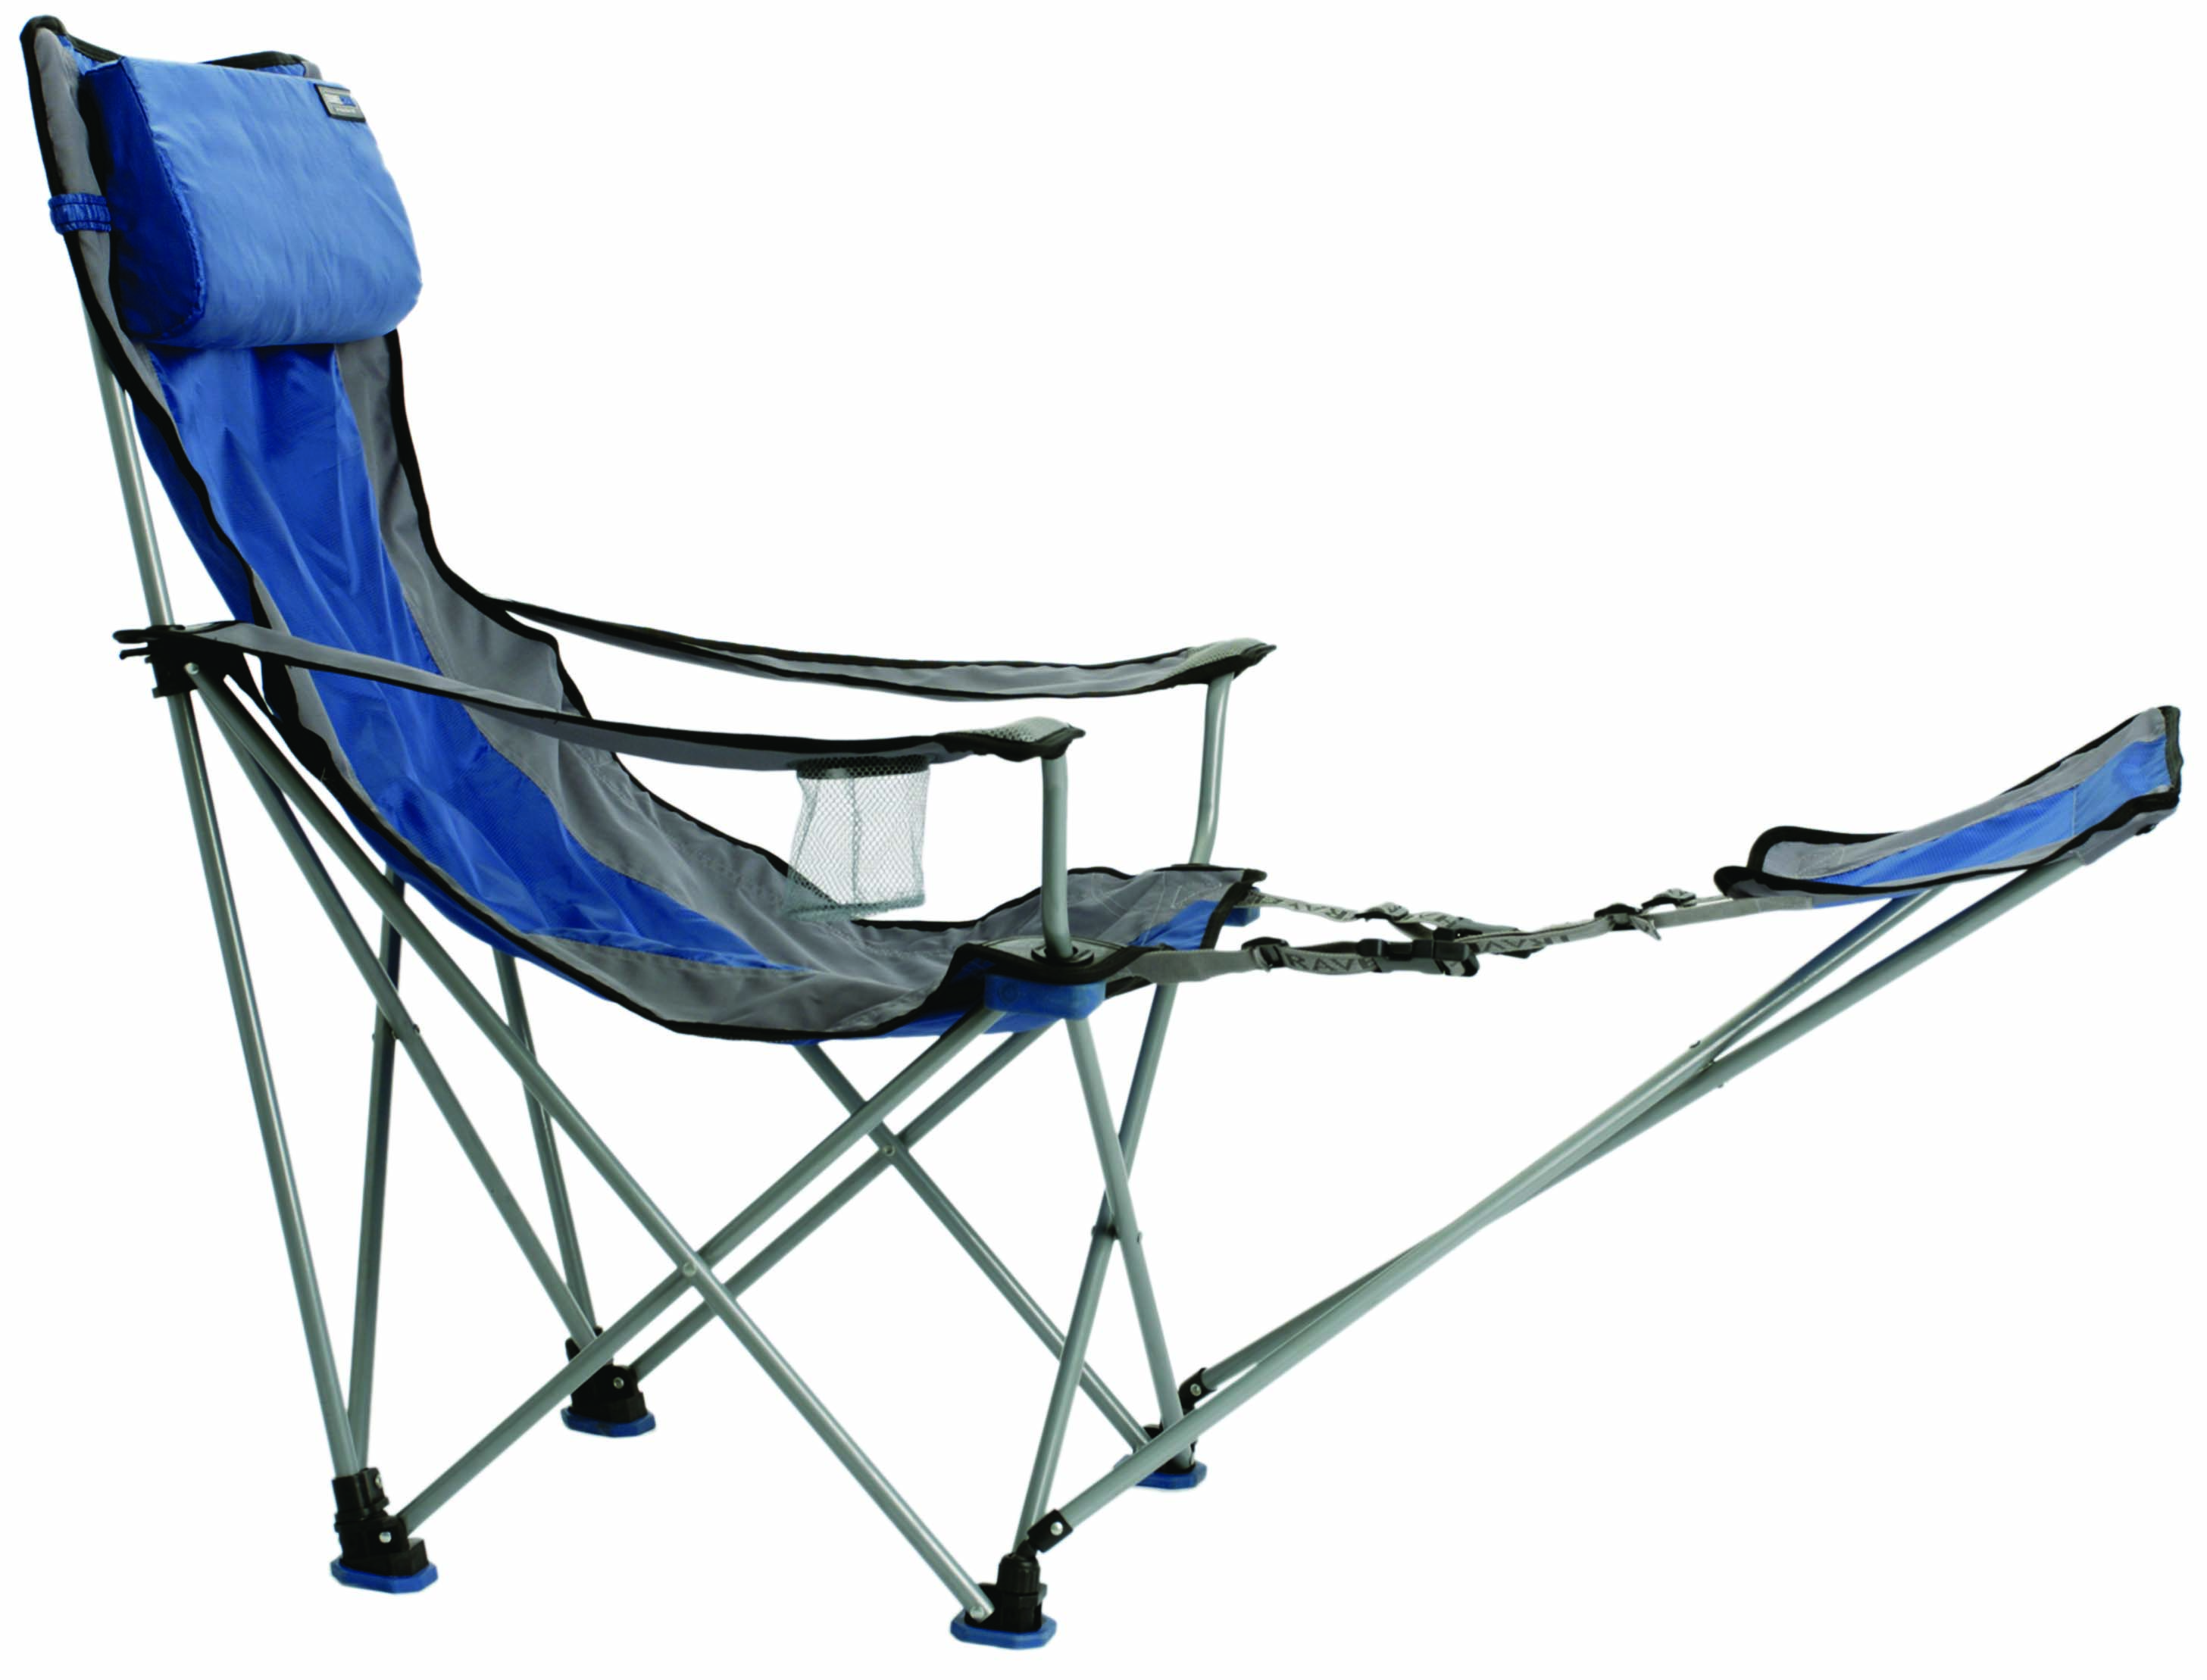 camping chairs big 5 rocking chair modern nursery travel bubba folding outdoor blue